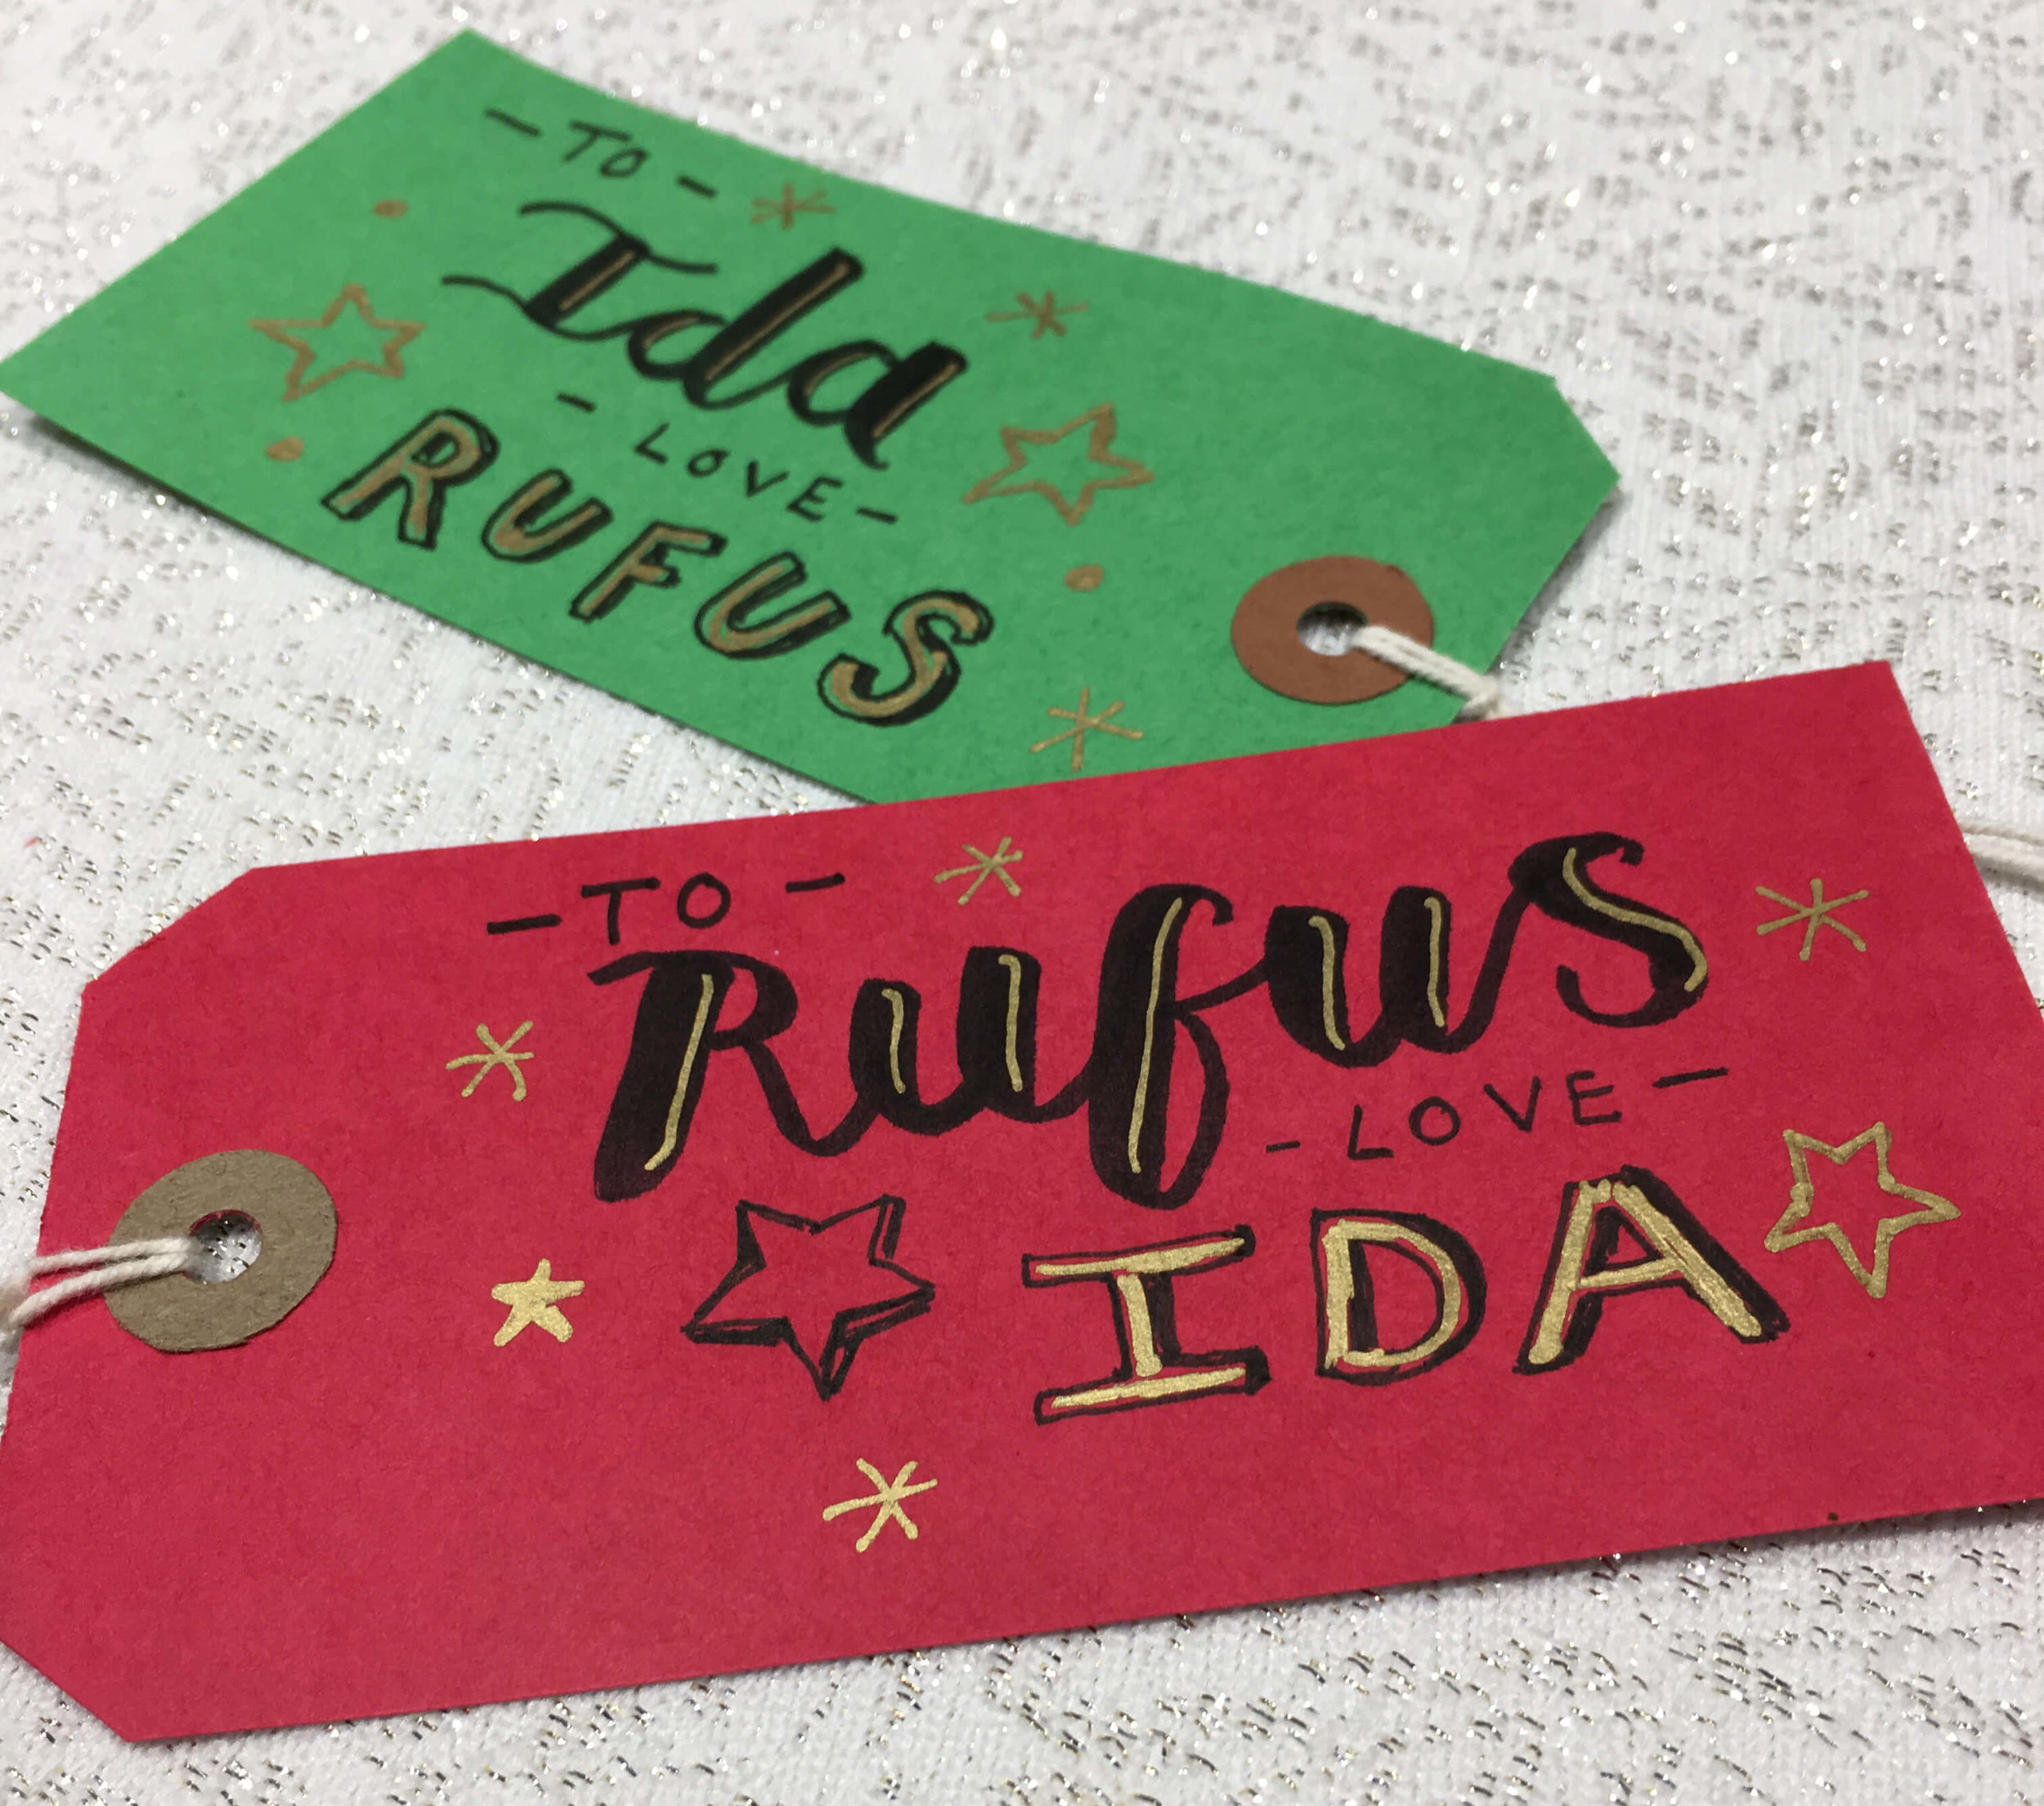 I wrote out Stu's poems on gift tags and hand lettered names on the reverse so they could be attached to gifts.